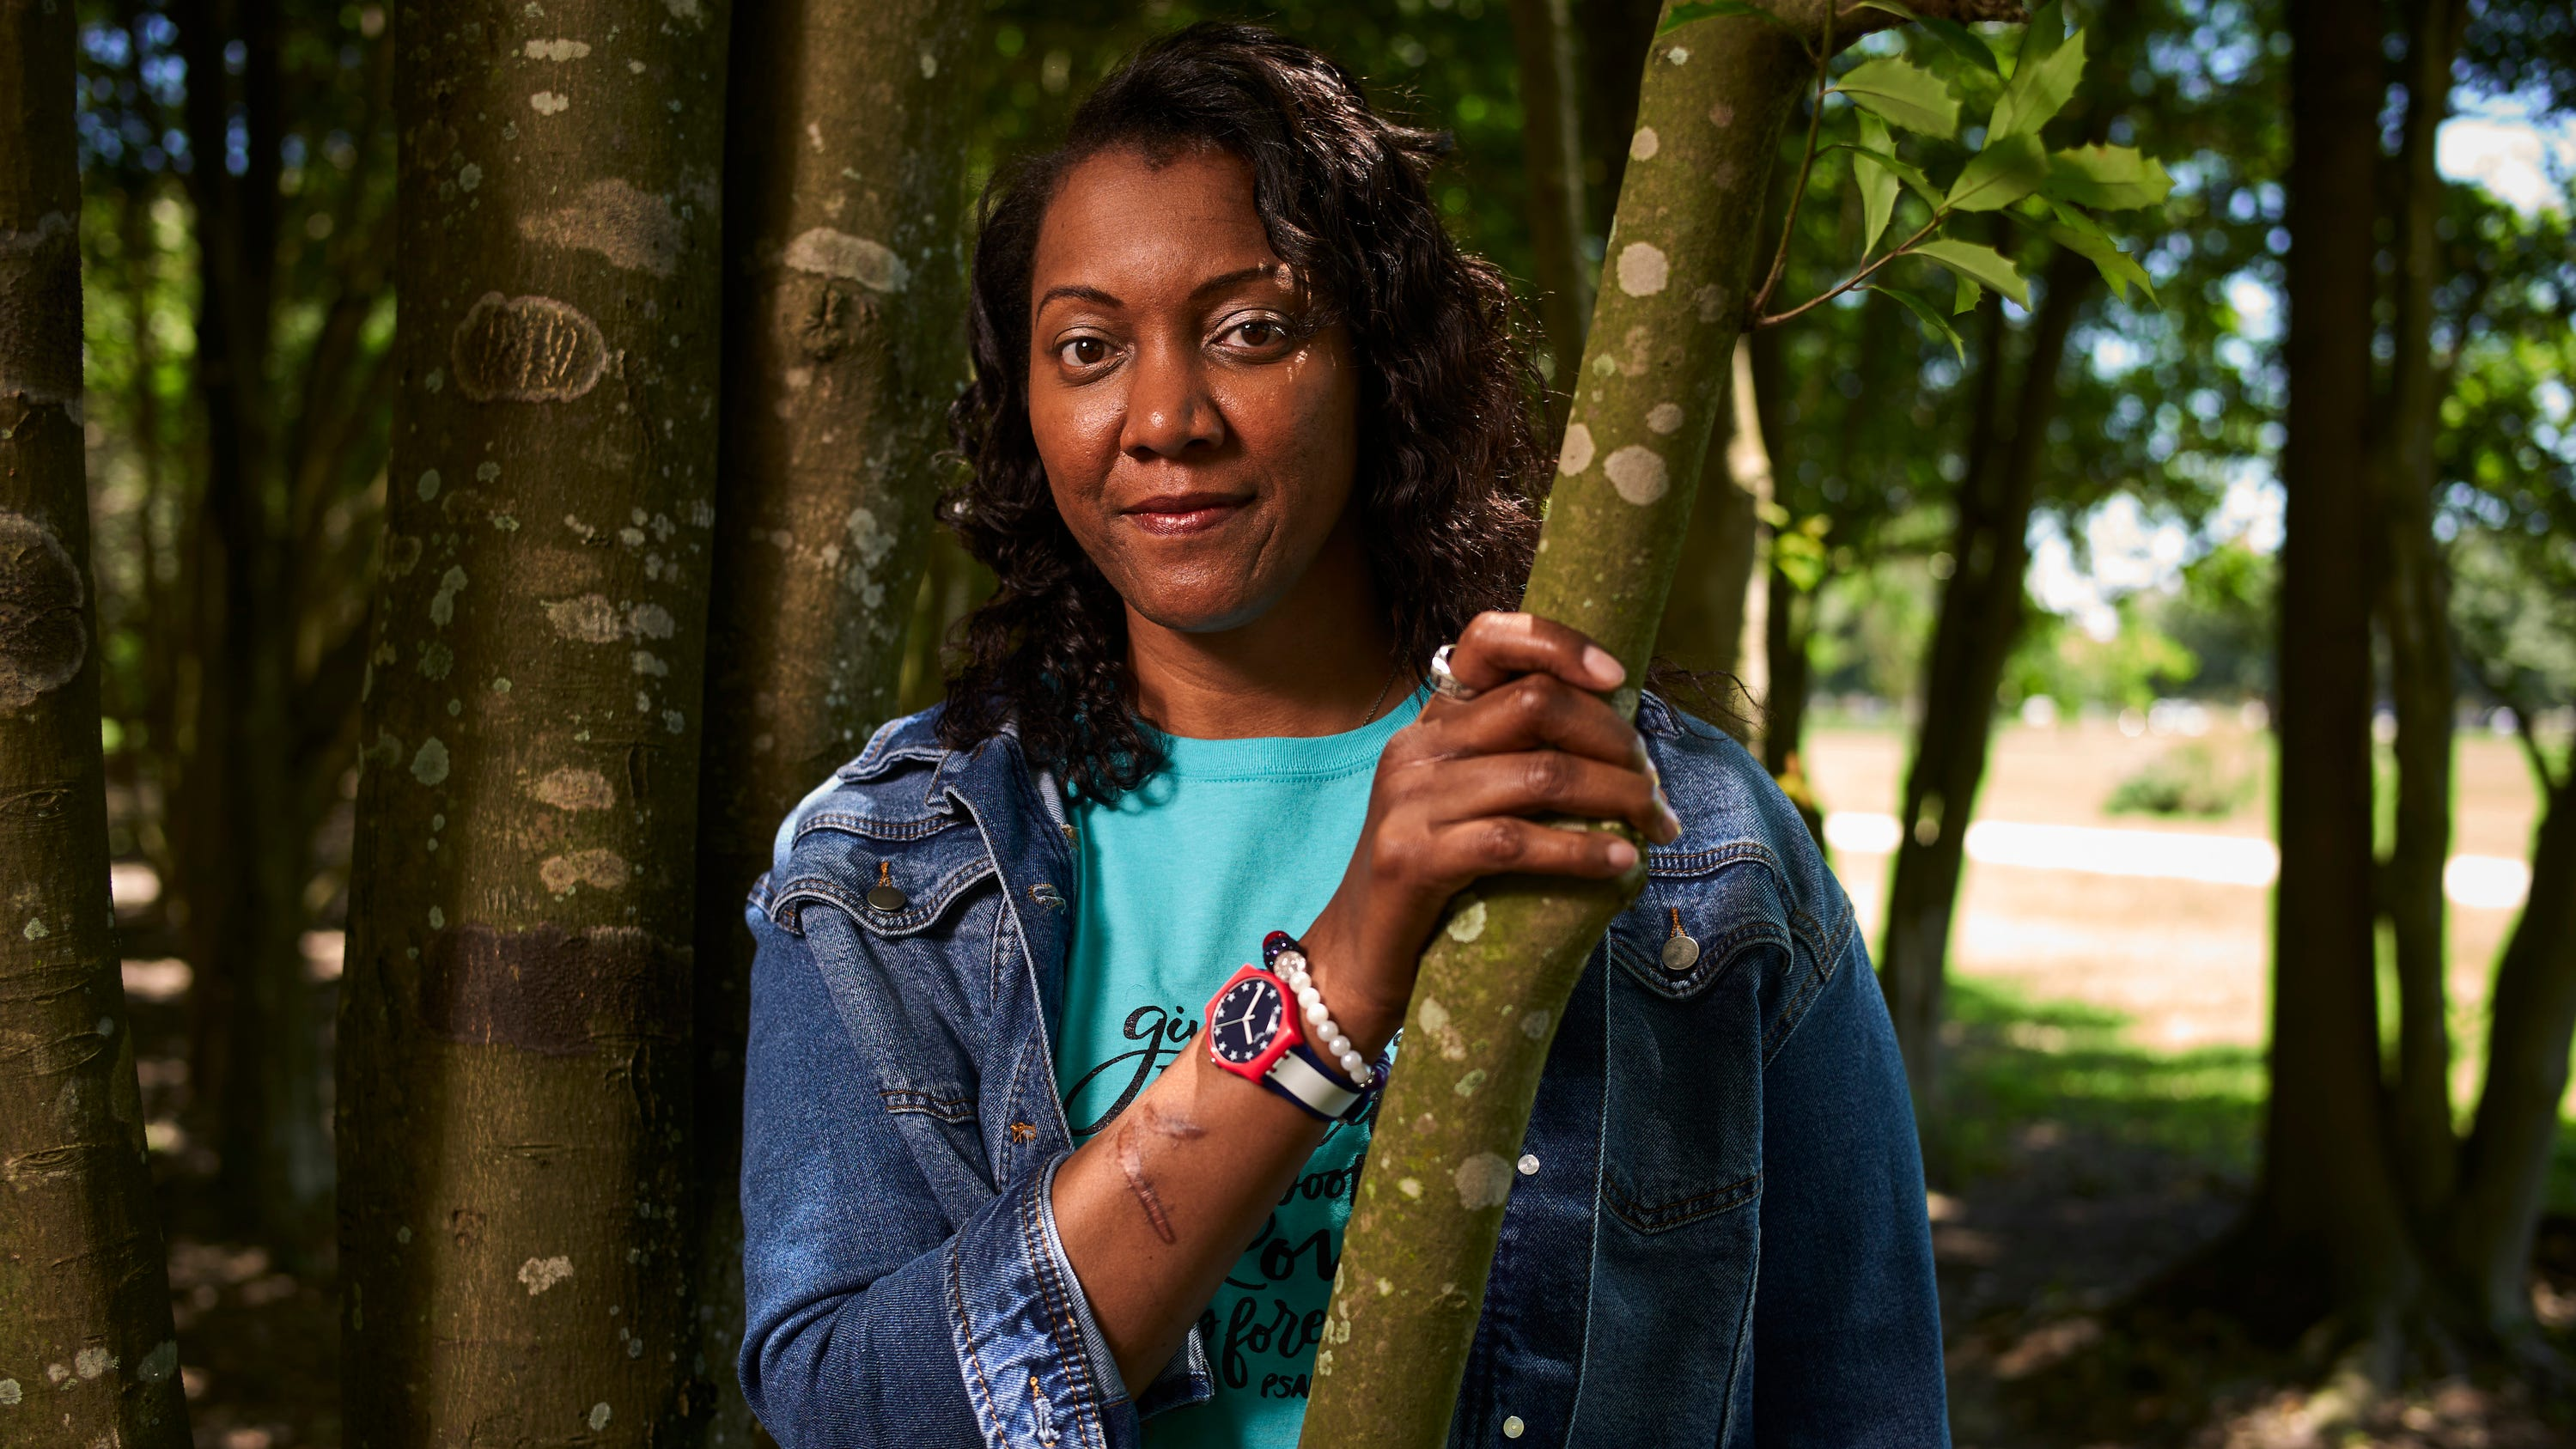 Former Olympic volleyball player Danielle Scott poses for a portrait in Baton Rouge, Louisiana, on May 14, 2019. S